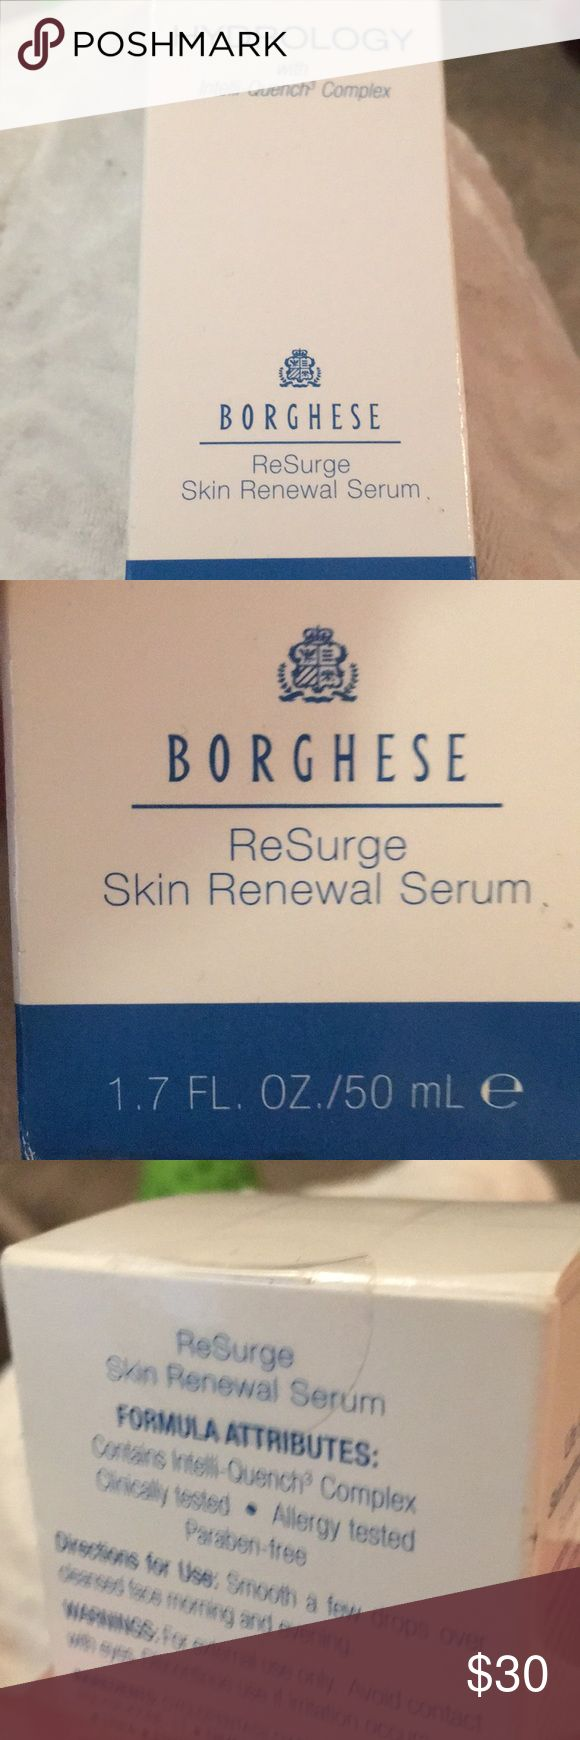 Borghese skin serum/ brand new never used This is brand new never used/ I have never opened this item. No Trades  Thank You Borghese Makeup